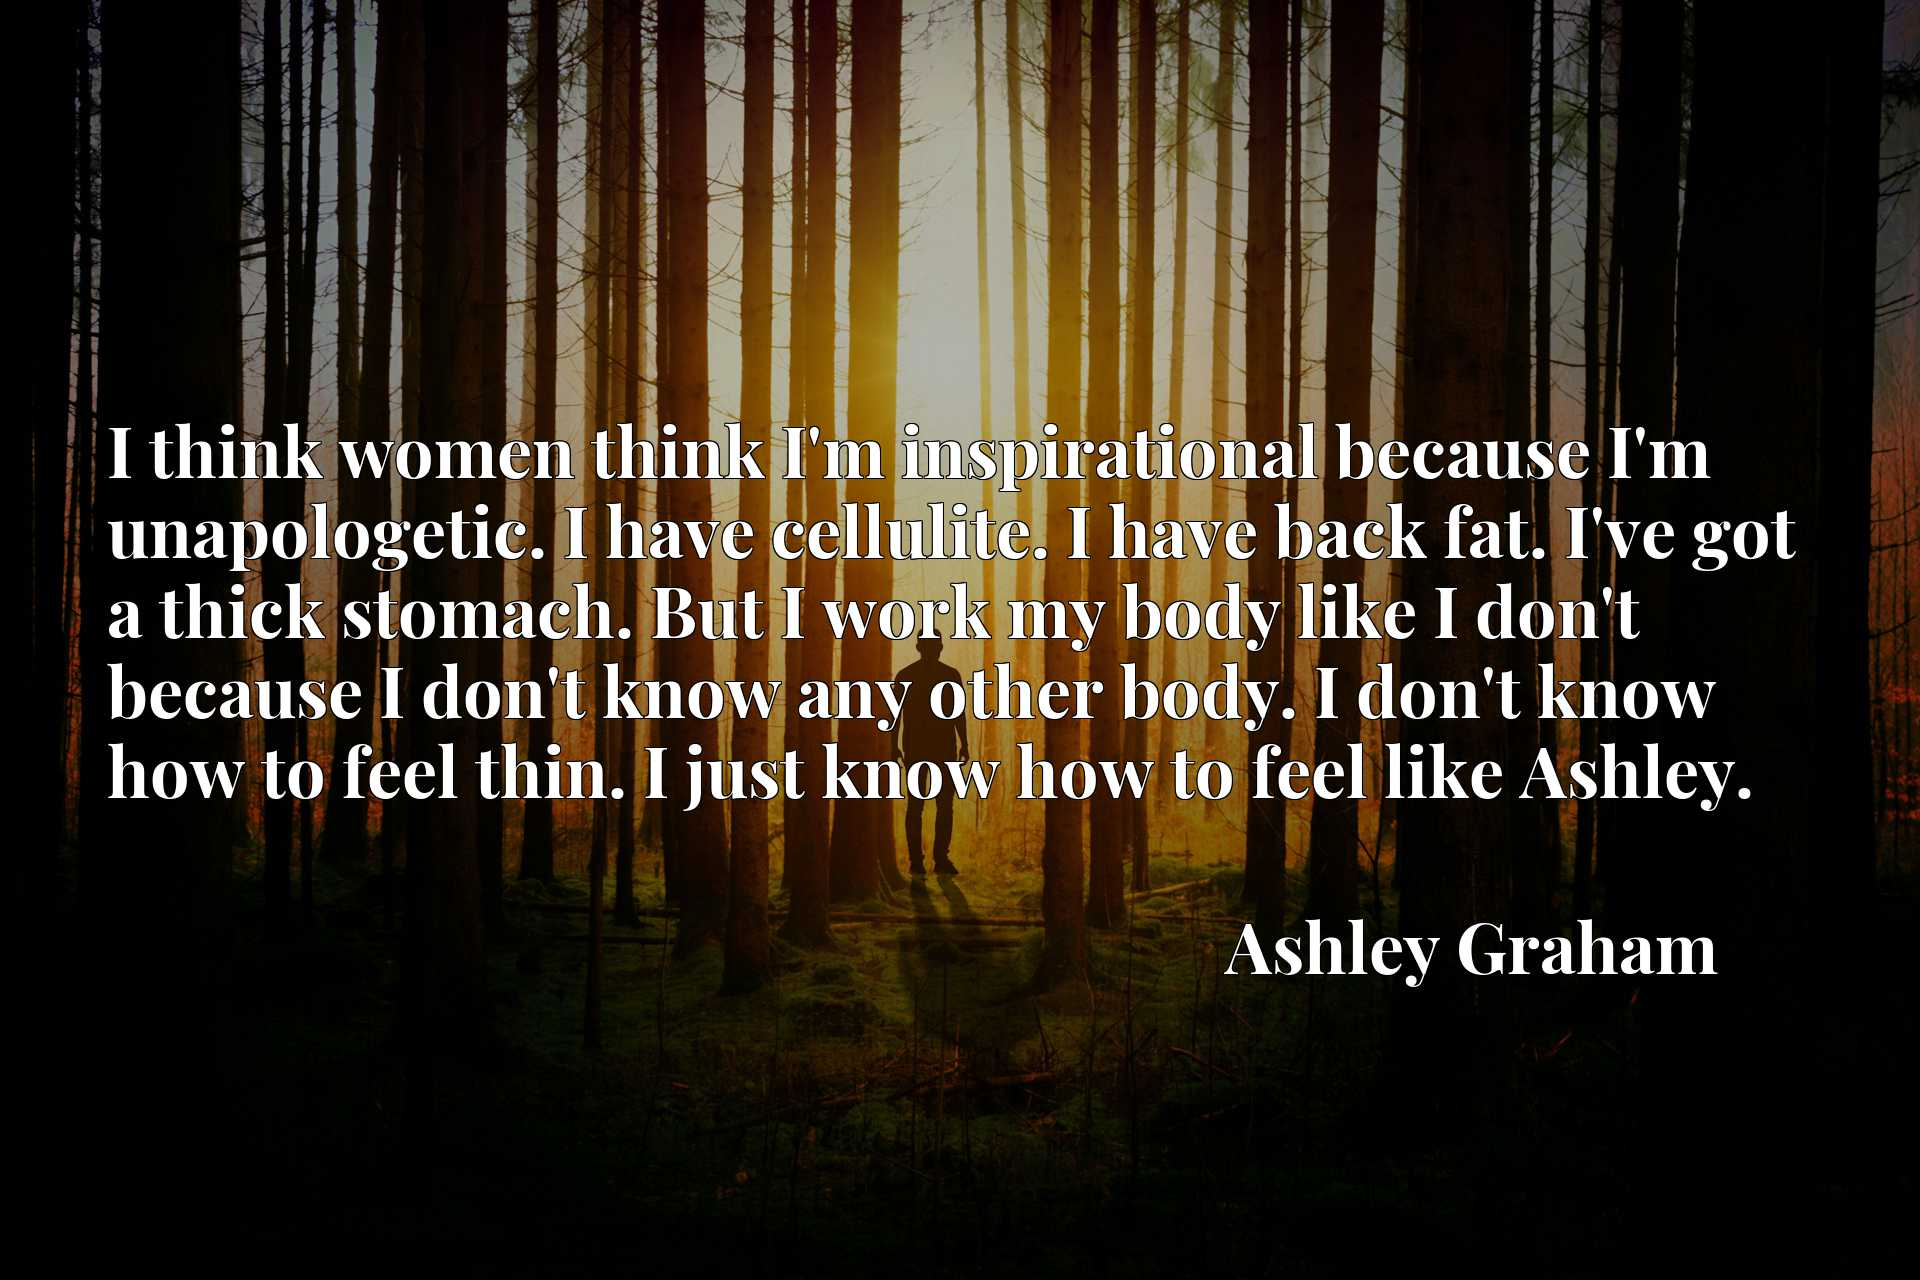 I think women think I'm inspirational because I'm unapologetic. I have cellulite. I have back fat. I've got a thick stomach. But I work my body like I don't because I don't know any other body. I don't know how to feel thin. I just know how to feel like Ashley.